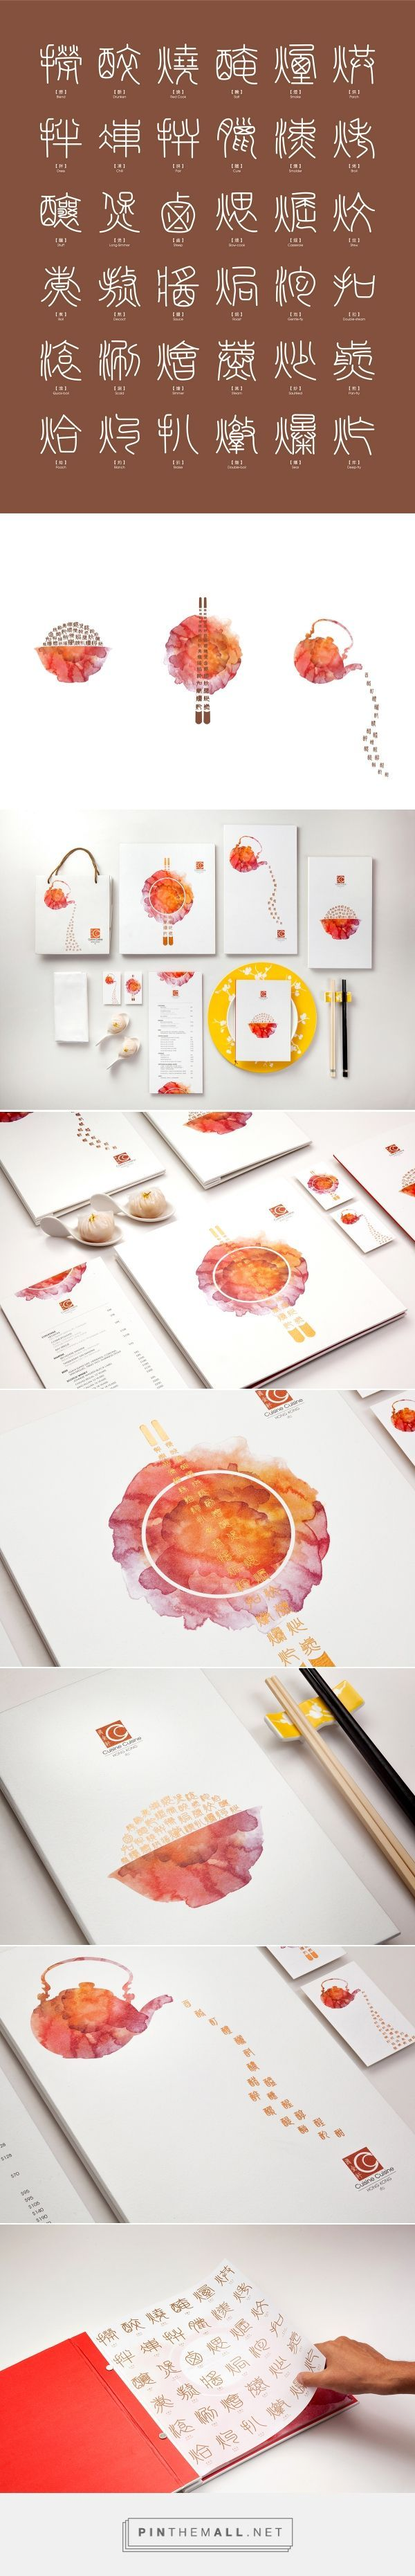 Cuisine Cuisine packaging branding on Behance by Alex Lau curated by Packaging Diva PD. Tucked away in IFC, a symbol of modern Hong Kong, Cuisine Cuisine is the contempory Chinese restaurant which revolutionizes traditional Chinese cooking